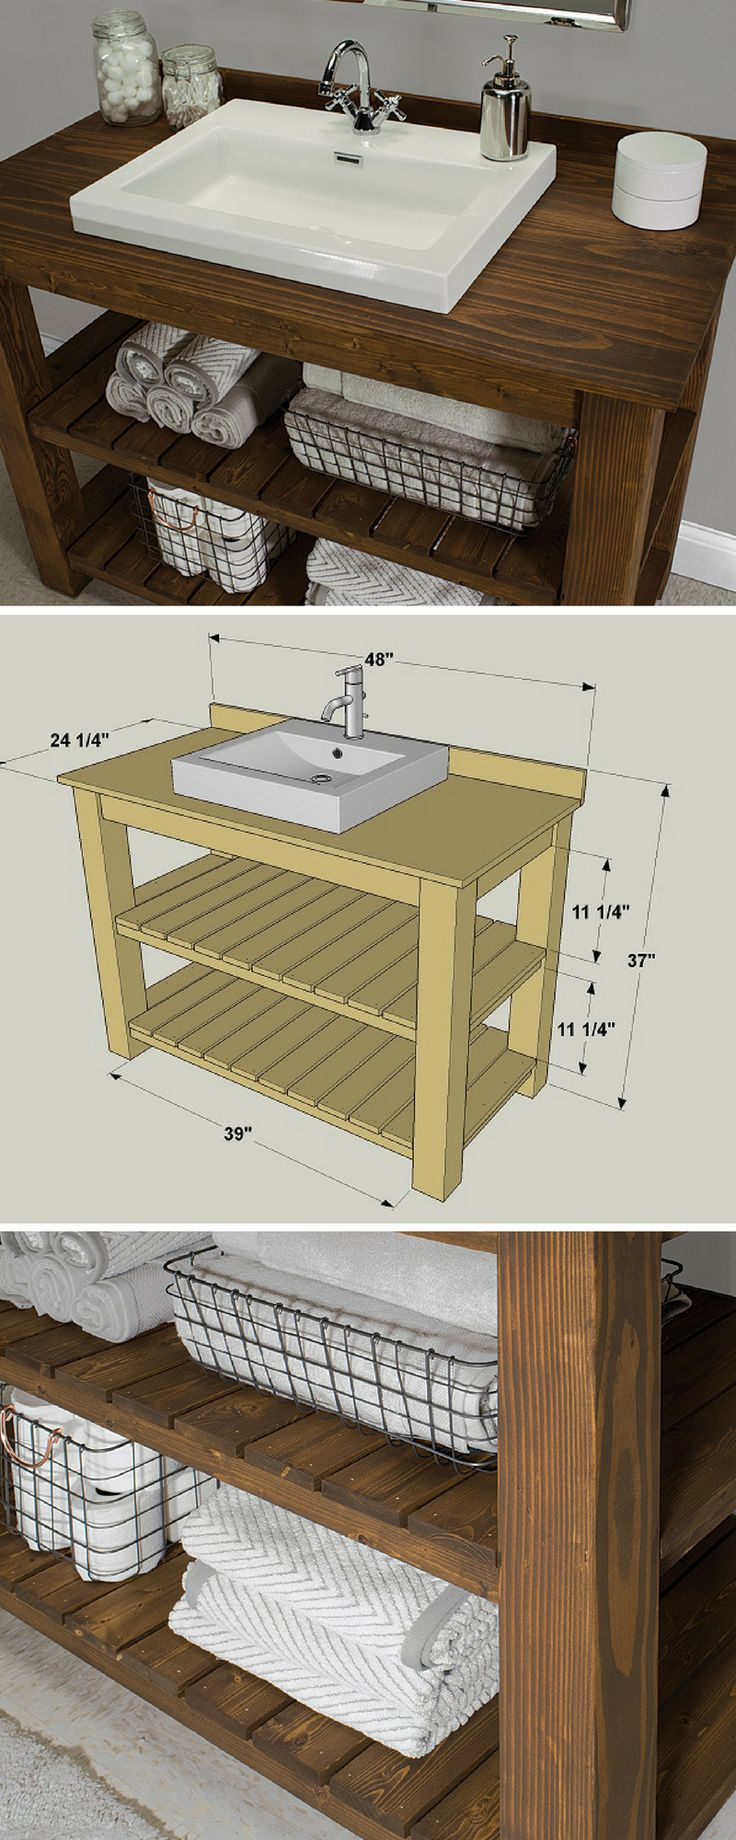 Diy Bathroom Vanity Ideas Onhalf Bathroom